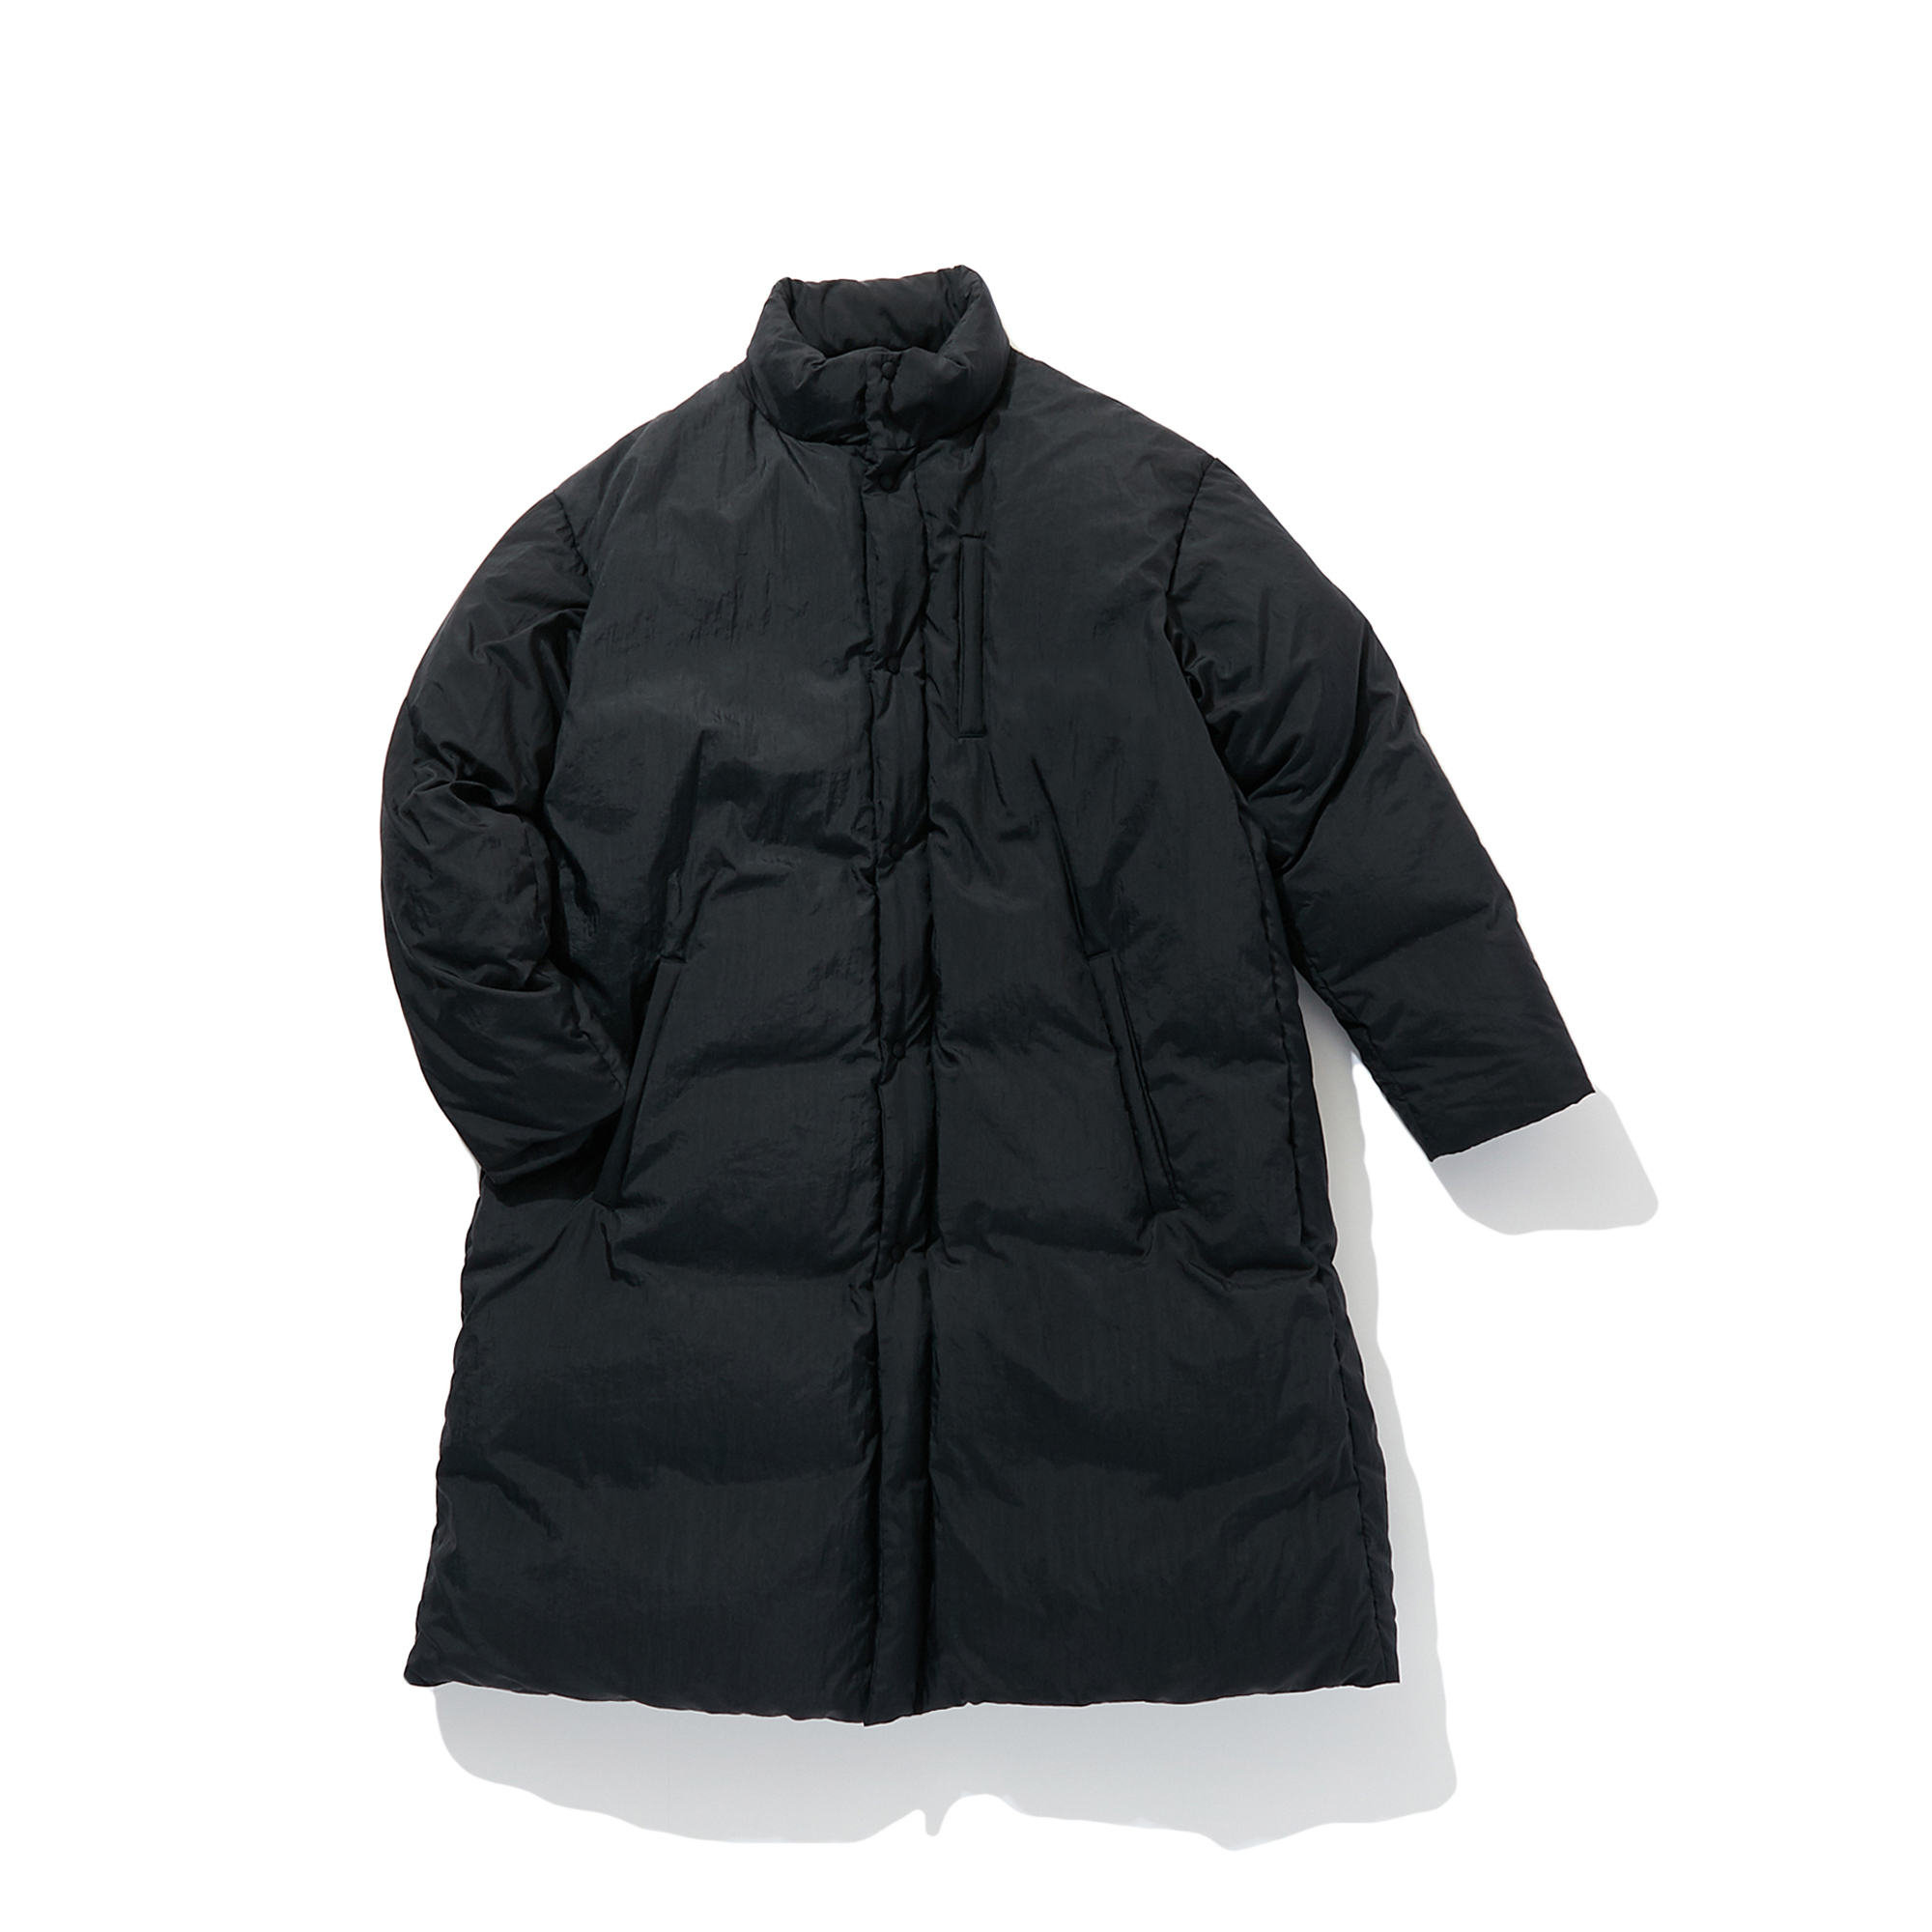 POLYPLOID「STAND COLLAR PUFFER COAT TYPE-C 」